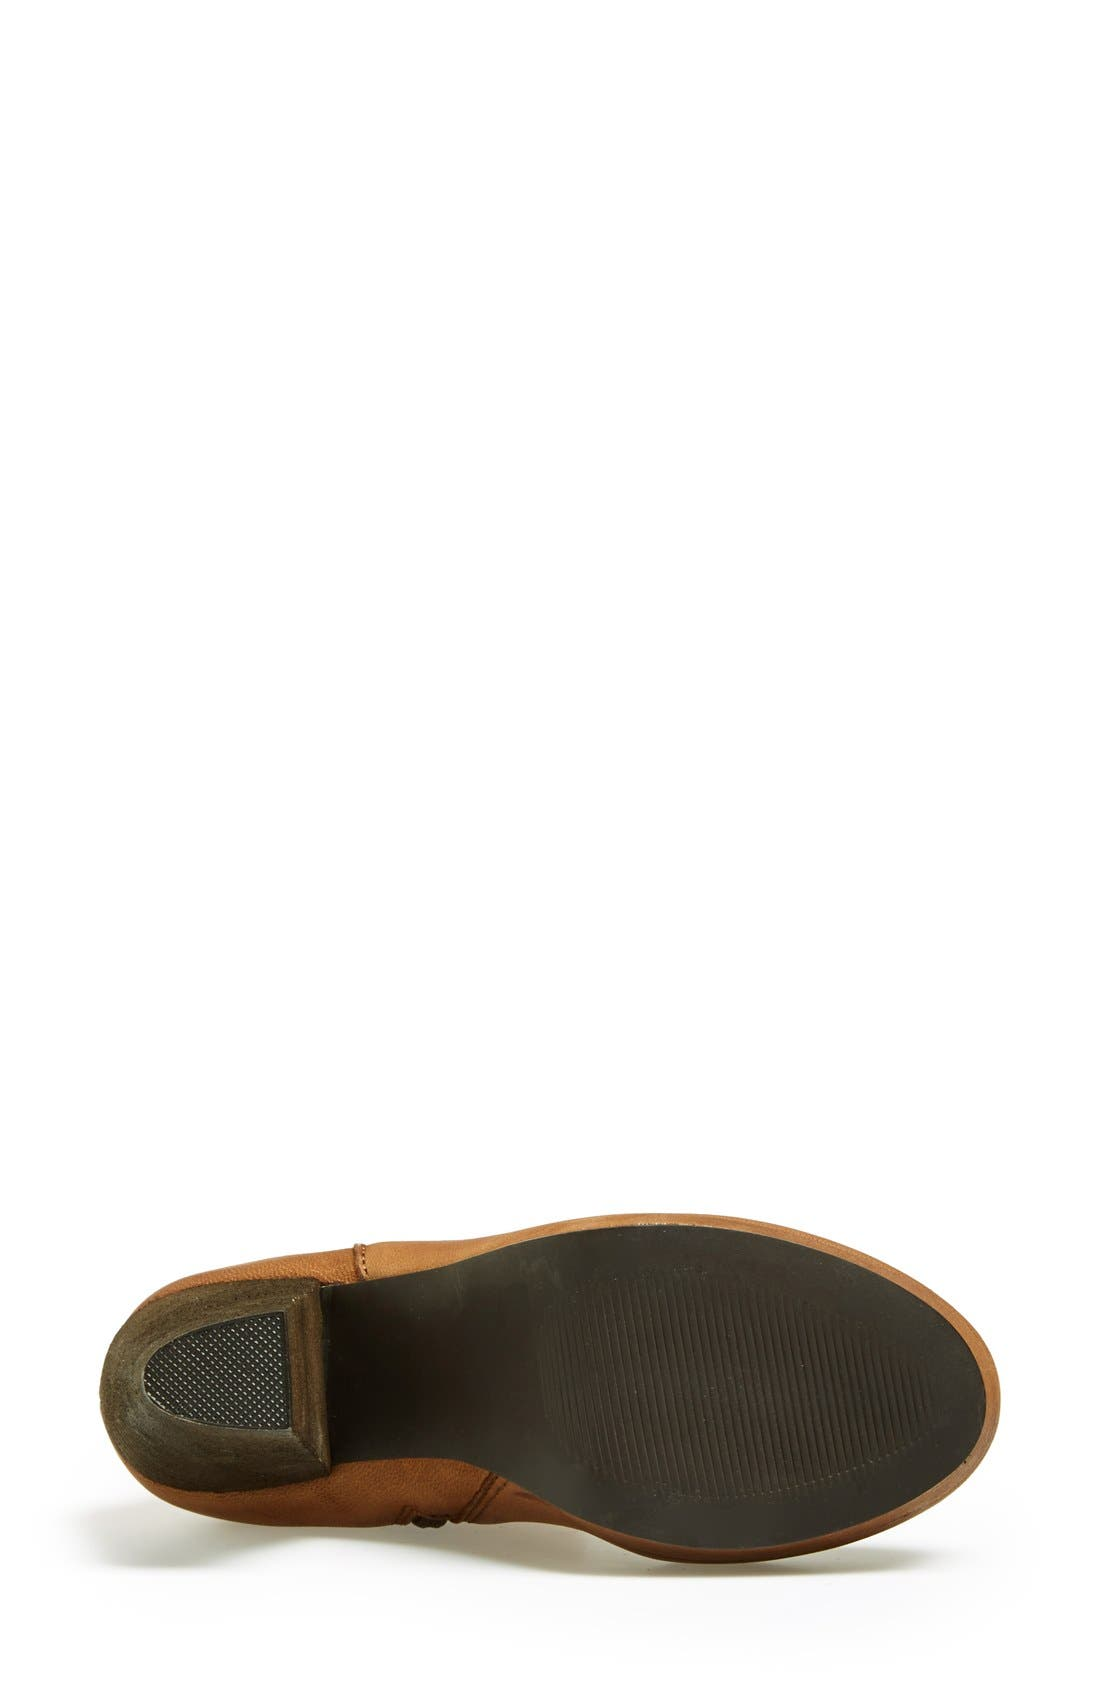 Alternate Image 7  - Steve Madden 'Rackey' Leather Platform Boot (Women)